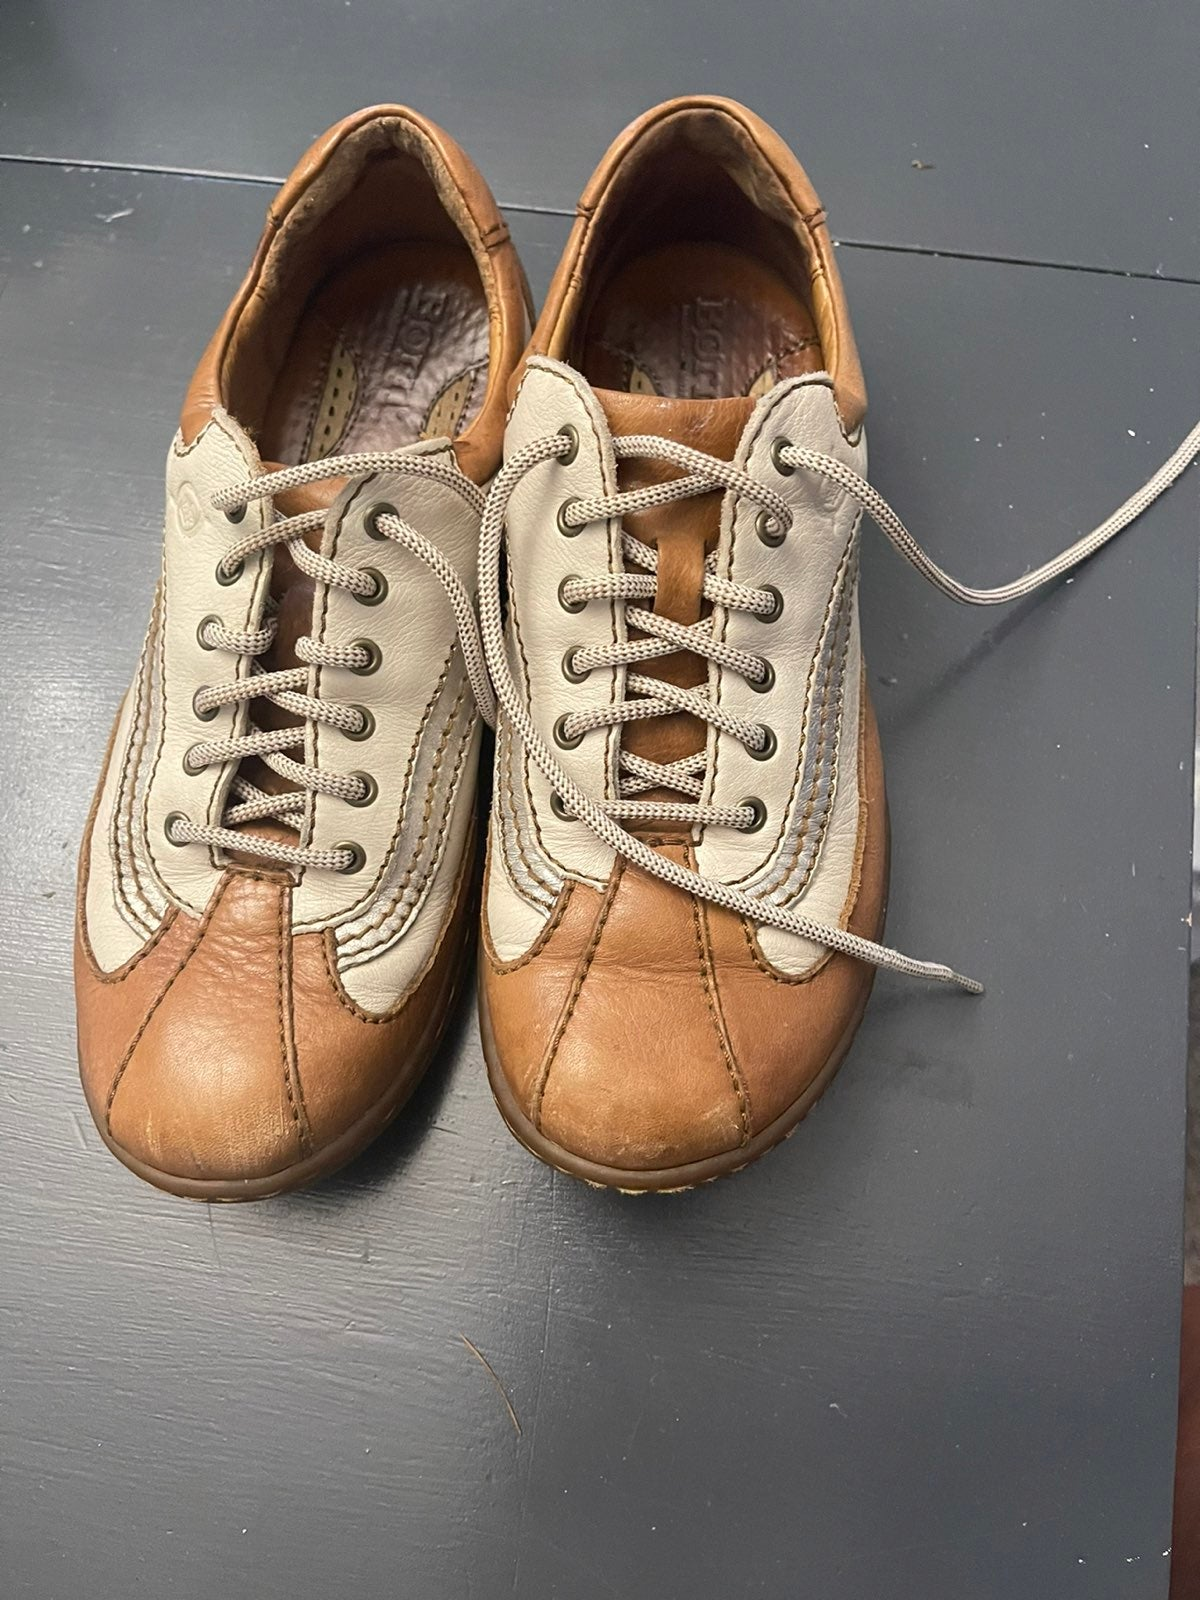 womens shoes size 7 1/2